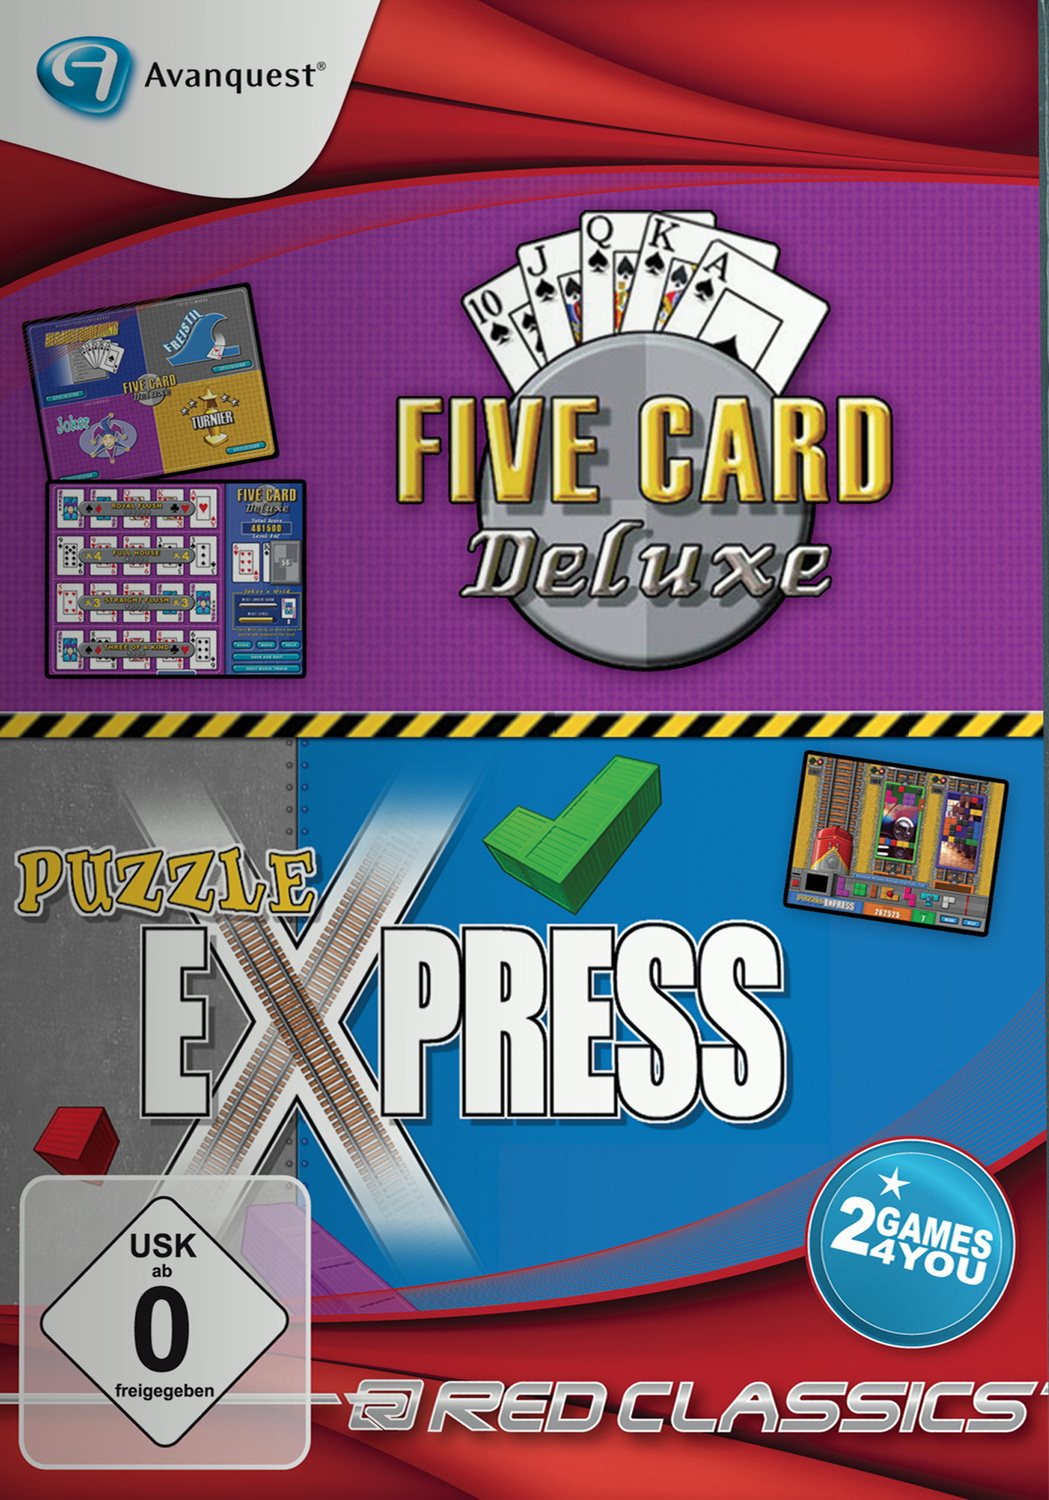 Red Classics: 5 Card Deluxe & Puzzle Express